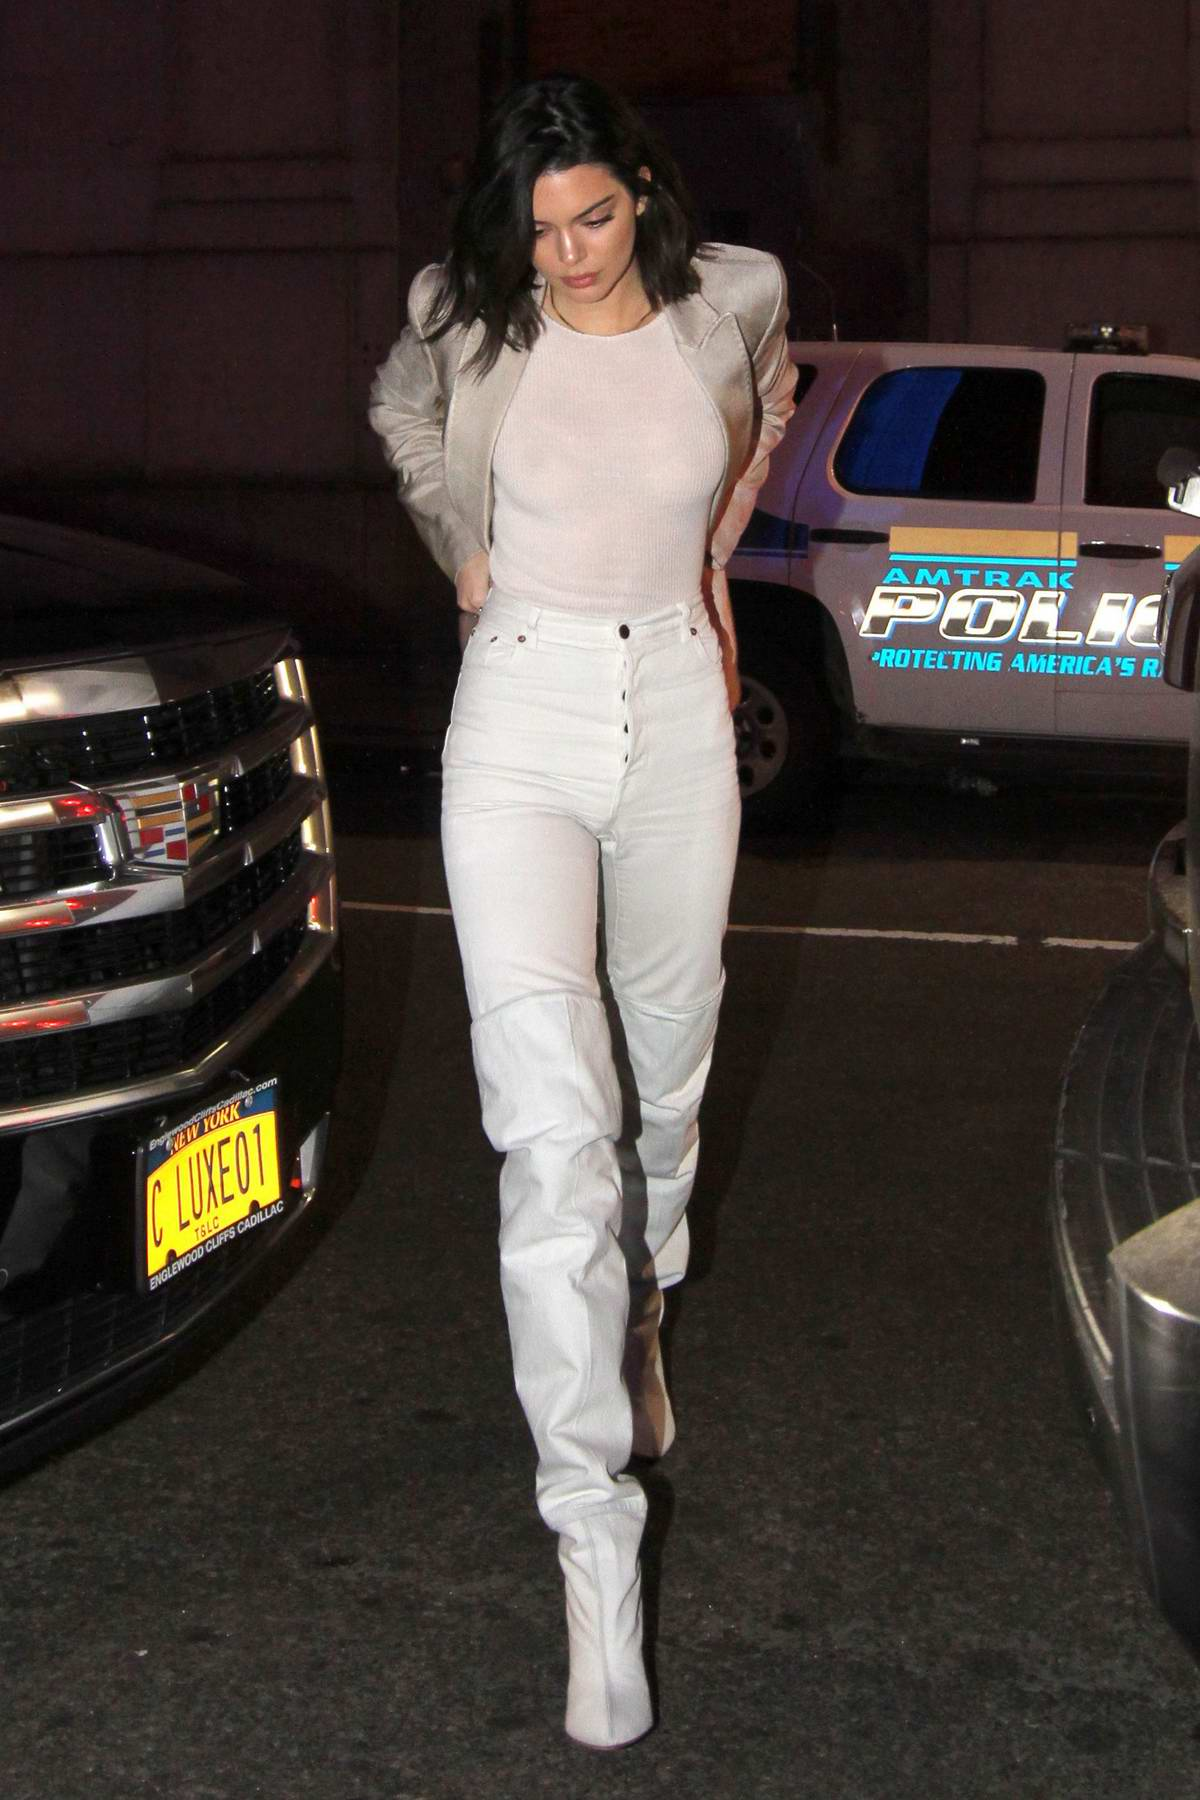 Kendall Jenner and Hailey Baldwin heading out of The Bowery Hotel for a night out in New York City